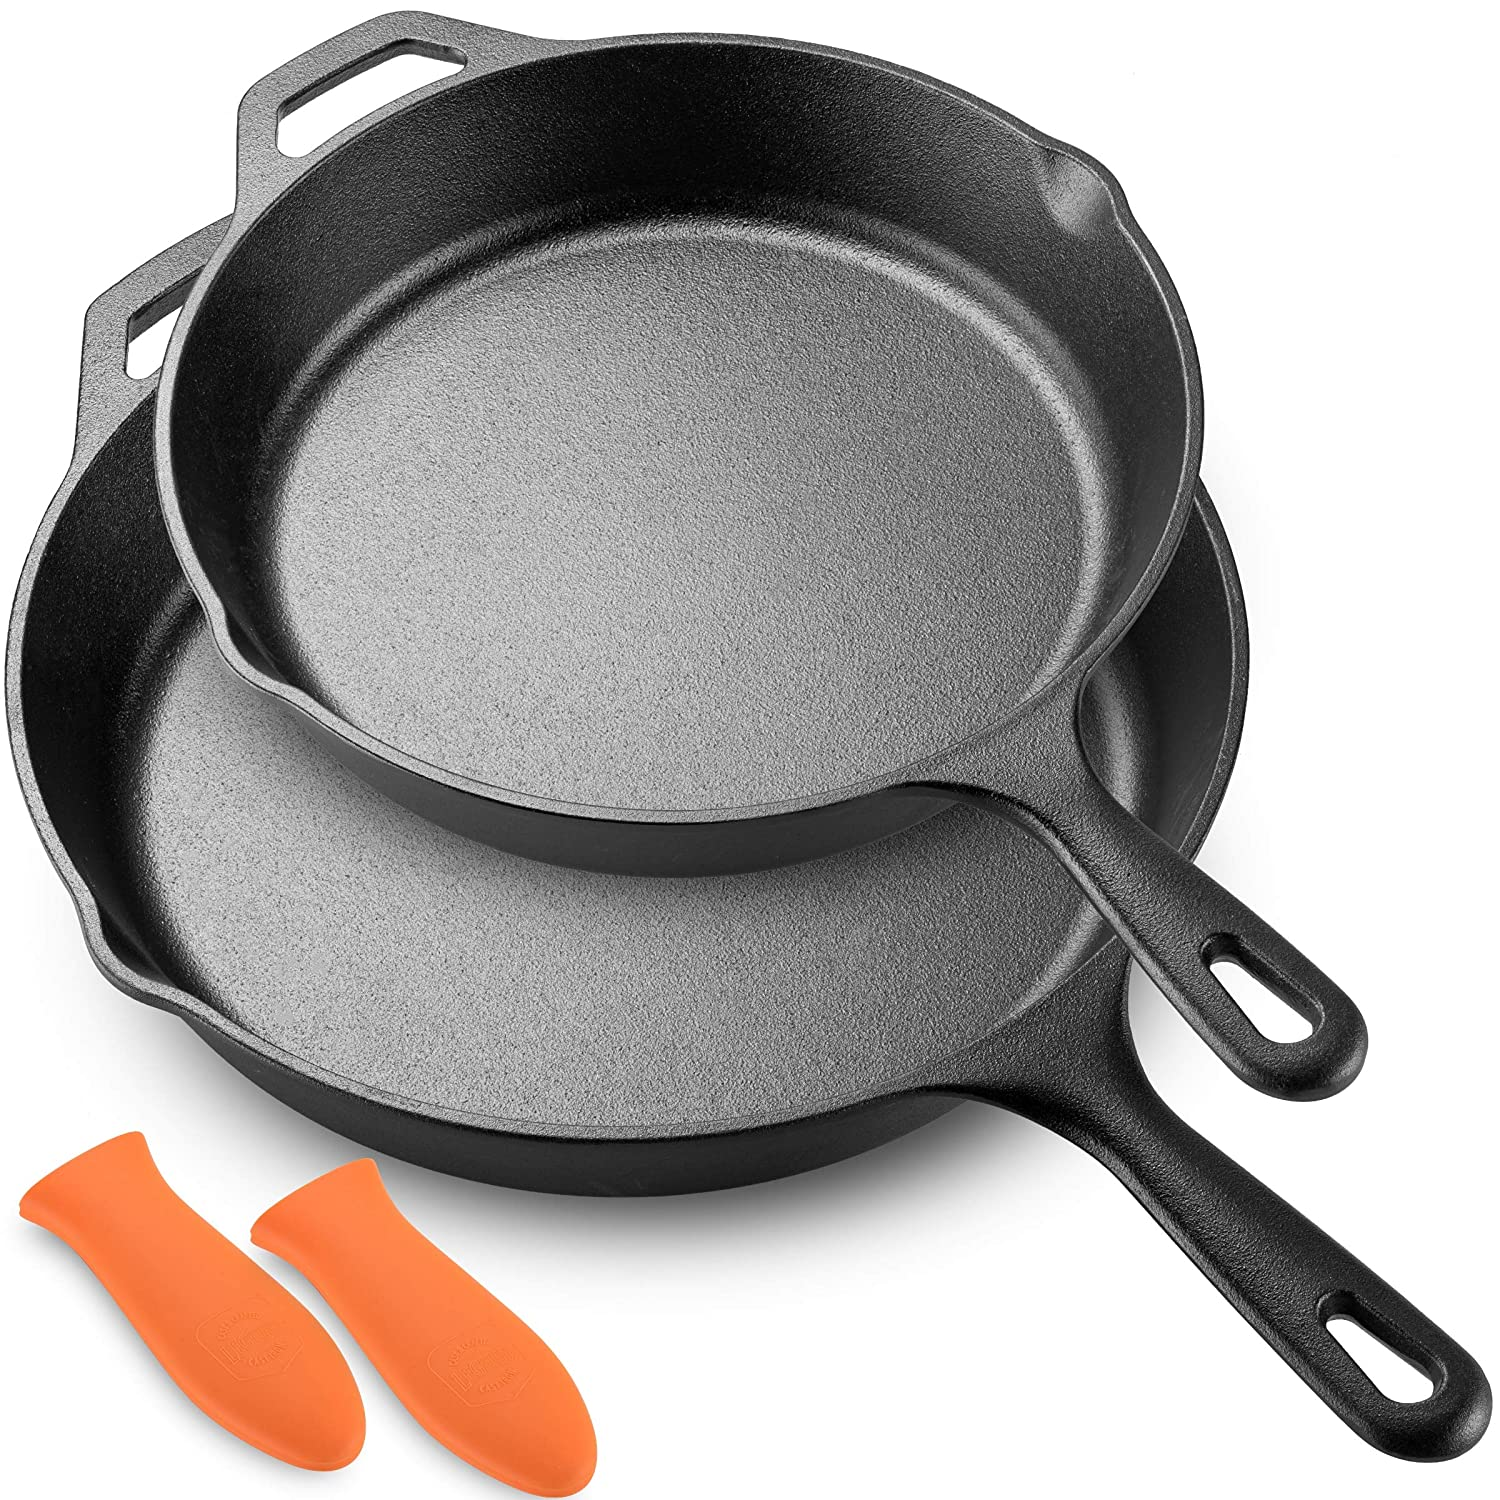 """Legend Cast Iron Skillet Set   Large 10"""" & 12"""" Frying Pans with Silicone Hot Sleeves for Oven, Induction, Cooking, Pizza, Sauteing, Grilling   Lightly Pre-Seasoned Cookware Gets Better with Use"""